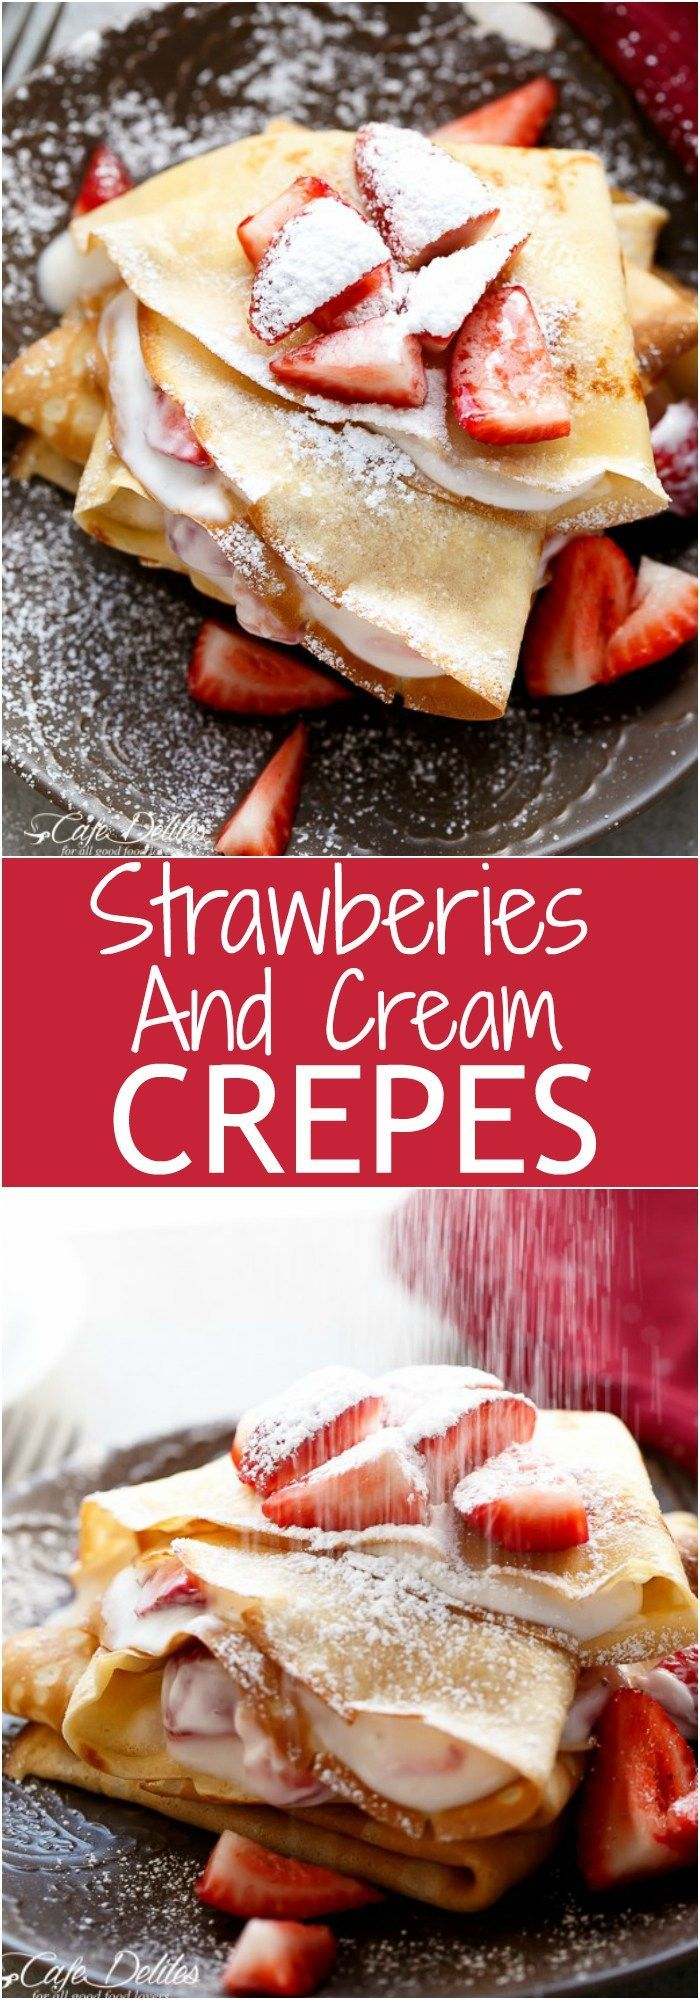 Strawberries and Cream Crepes Collage | cafedelites.com